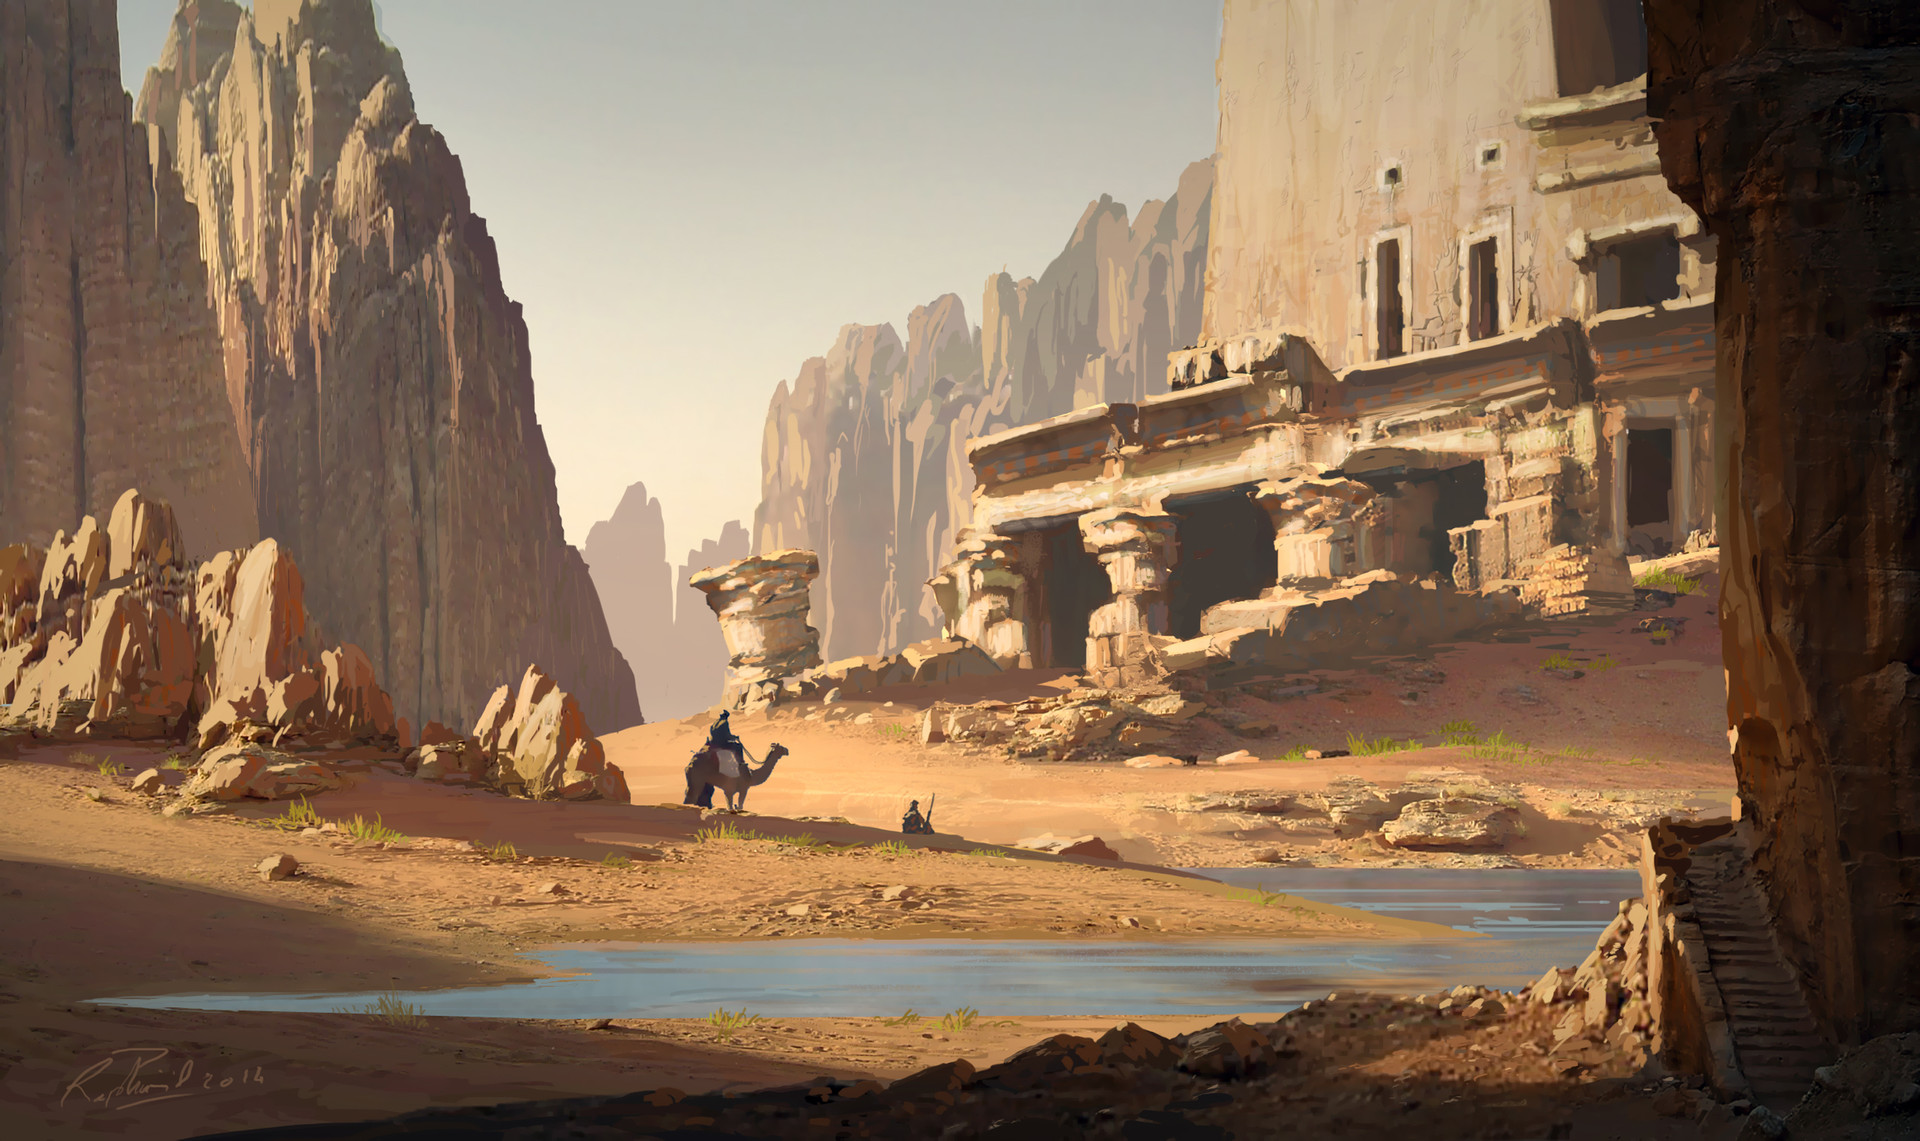 ArtStation - Ruins in The Desert, Raphael Lacoste